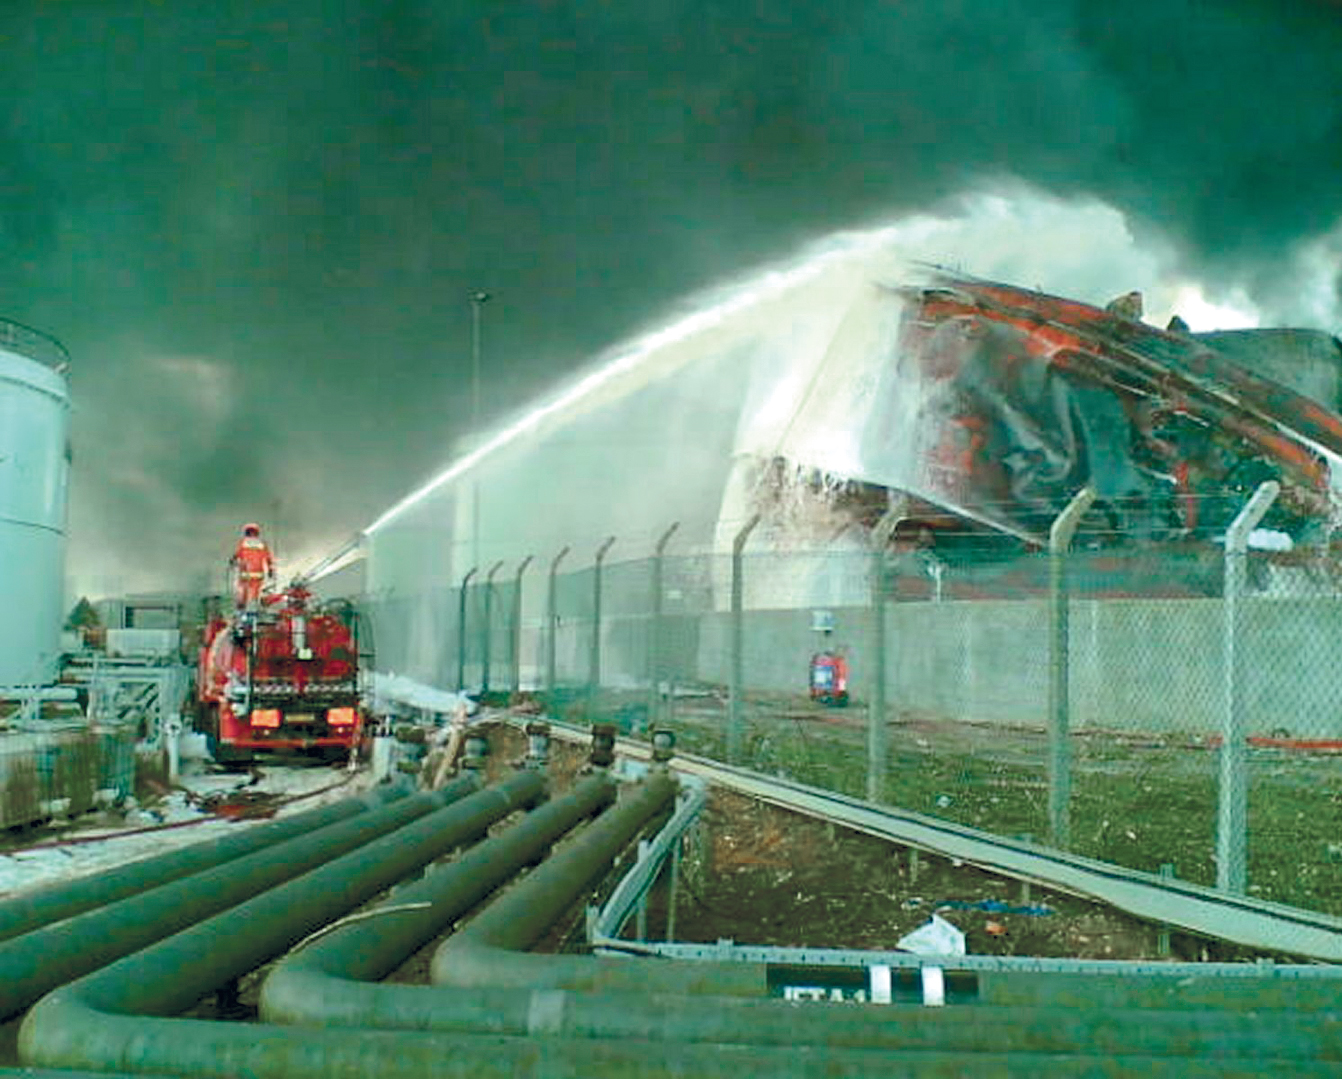 December Marks the 15th Anniversary of the Buncefield Depot Disaster